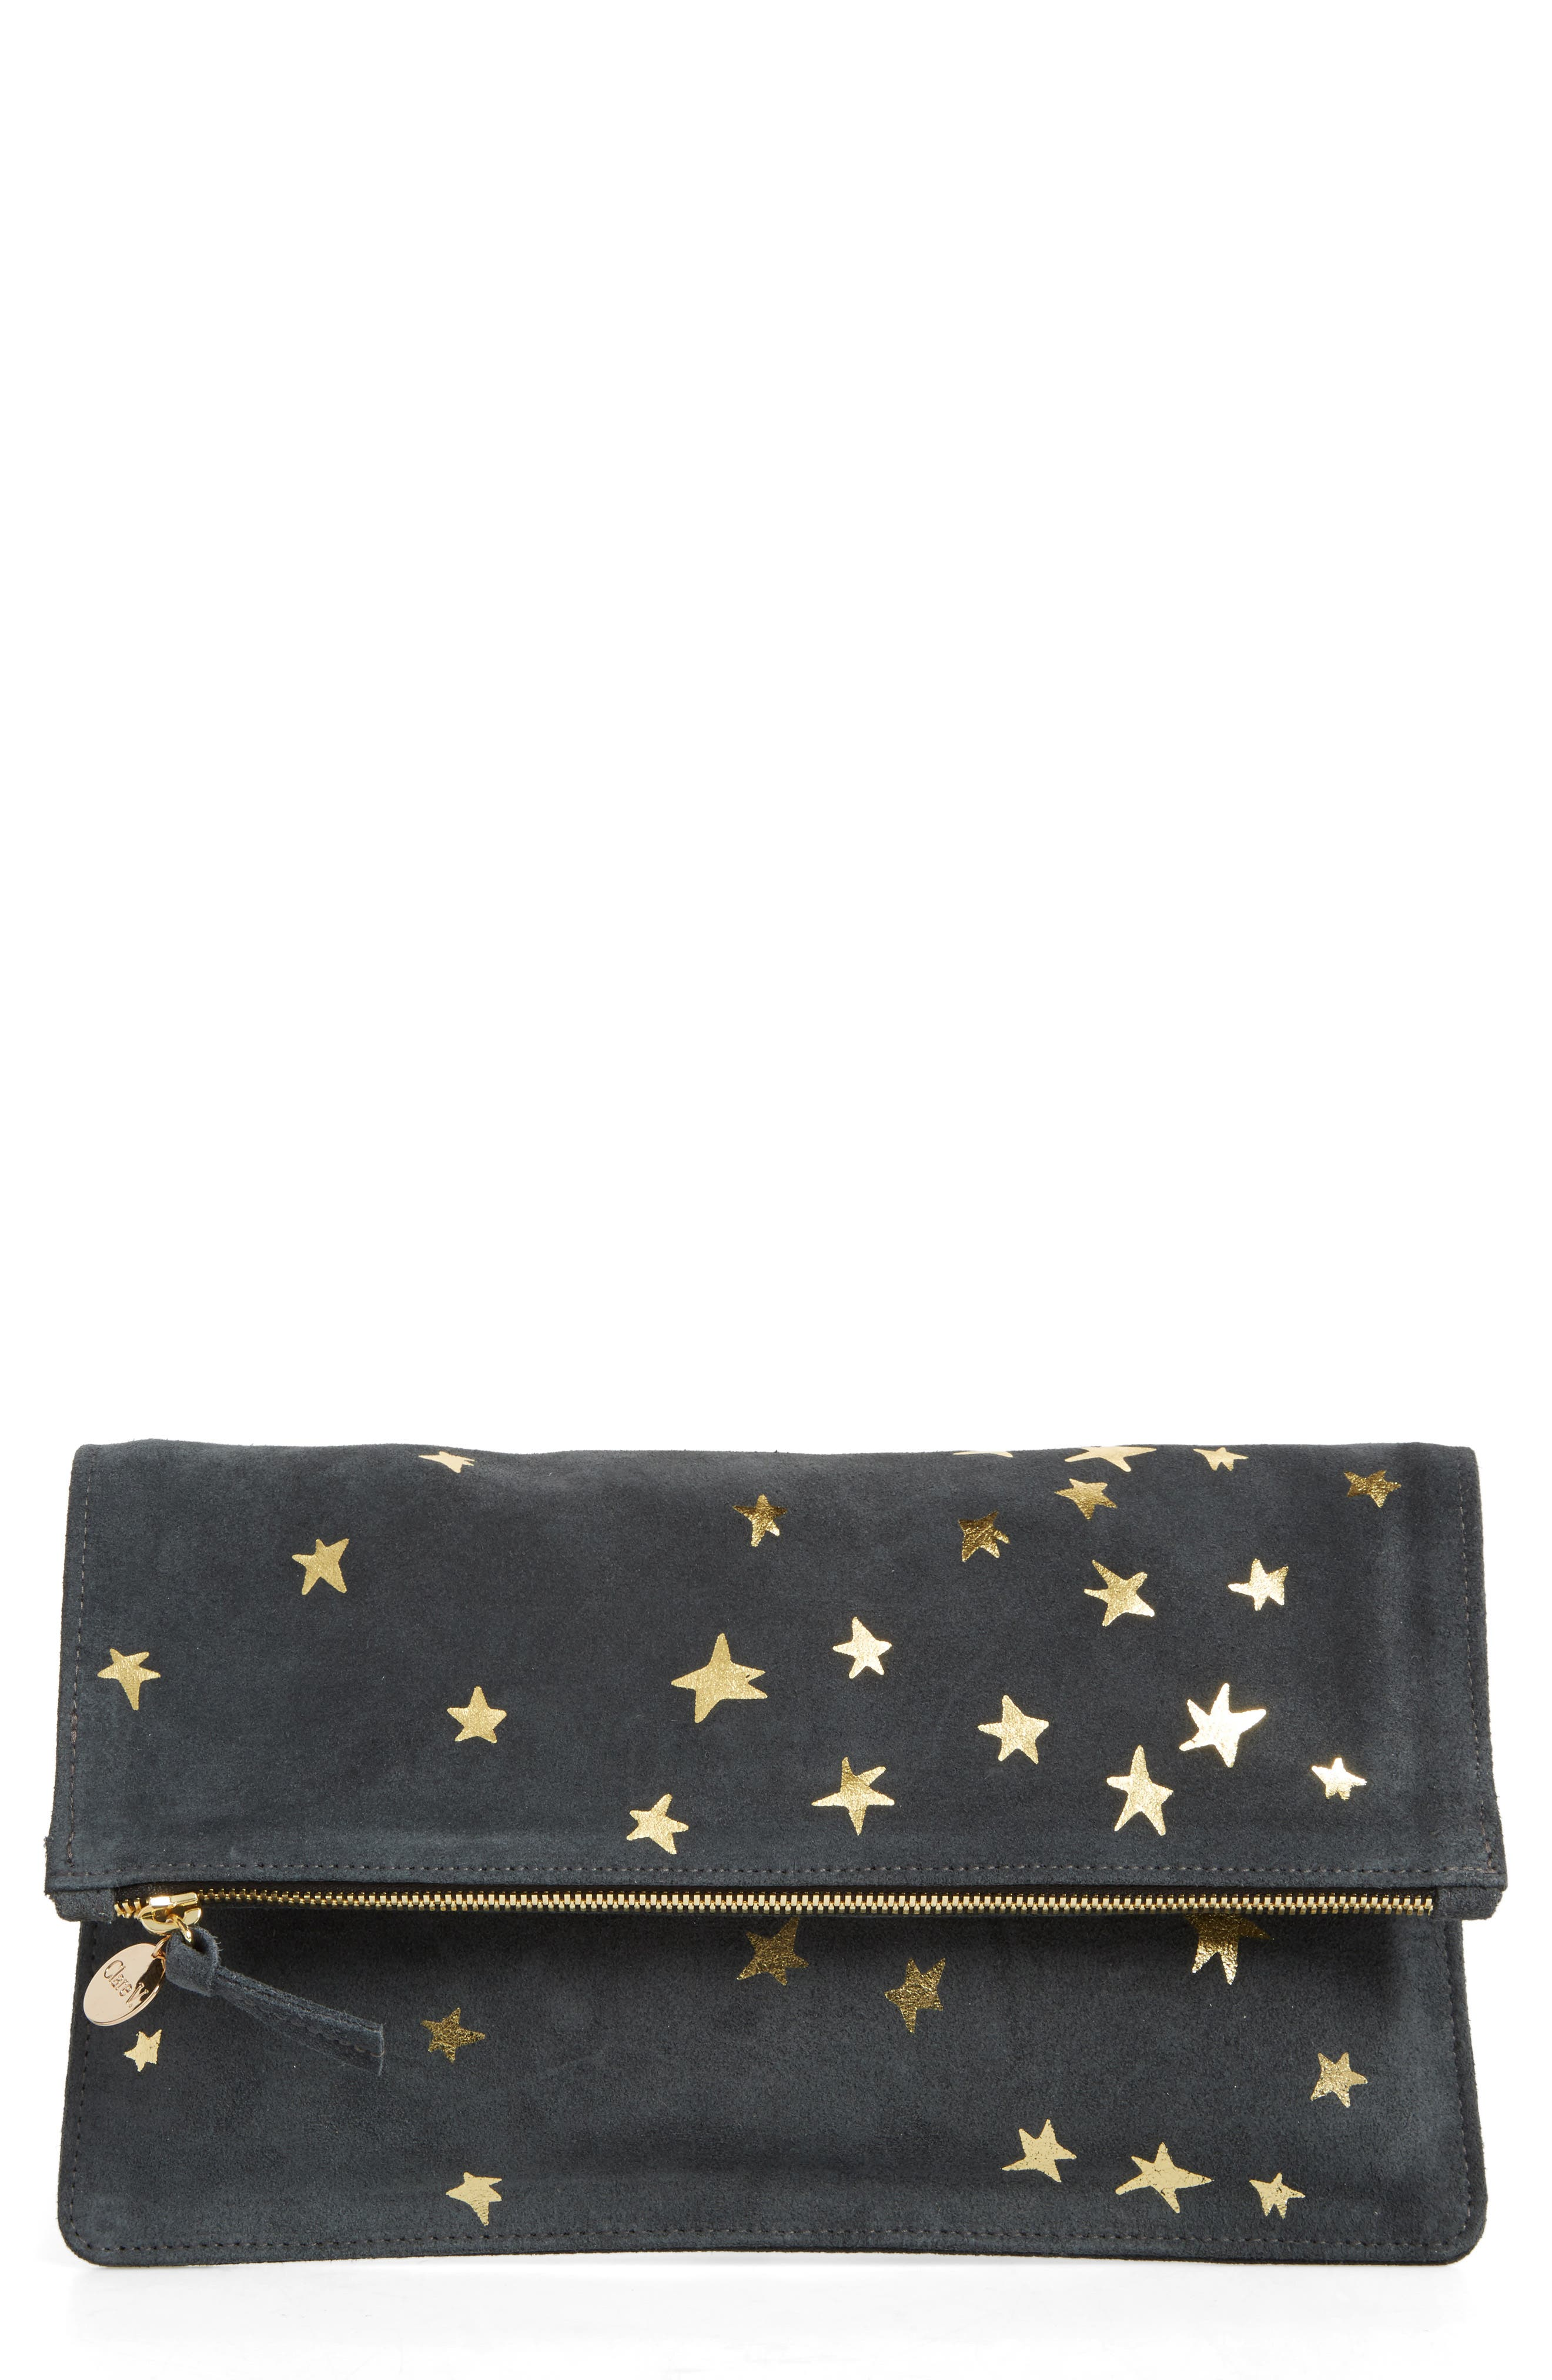 Clare V. Margot Star Print Foldover Suede Clutch